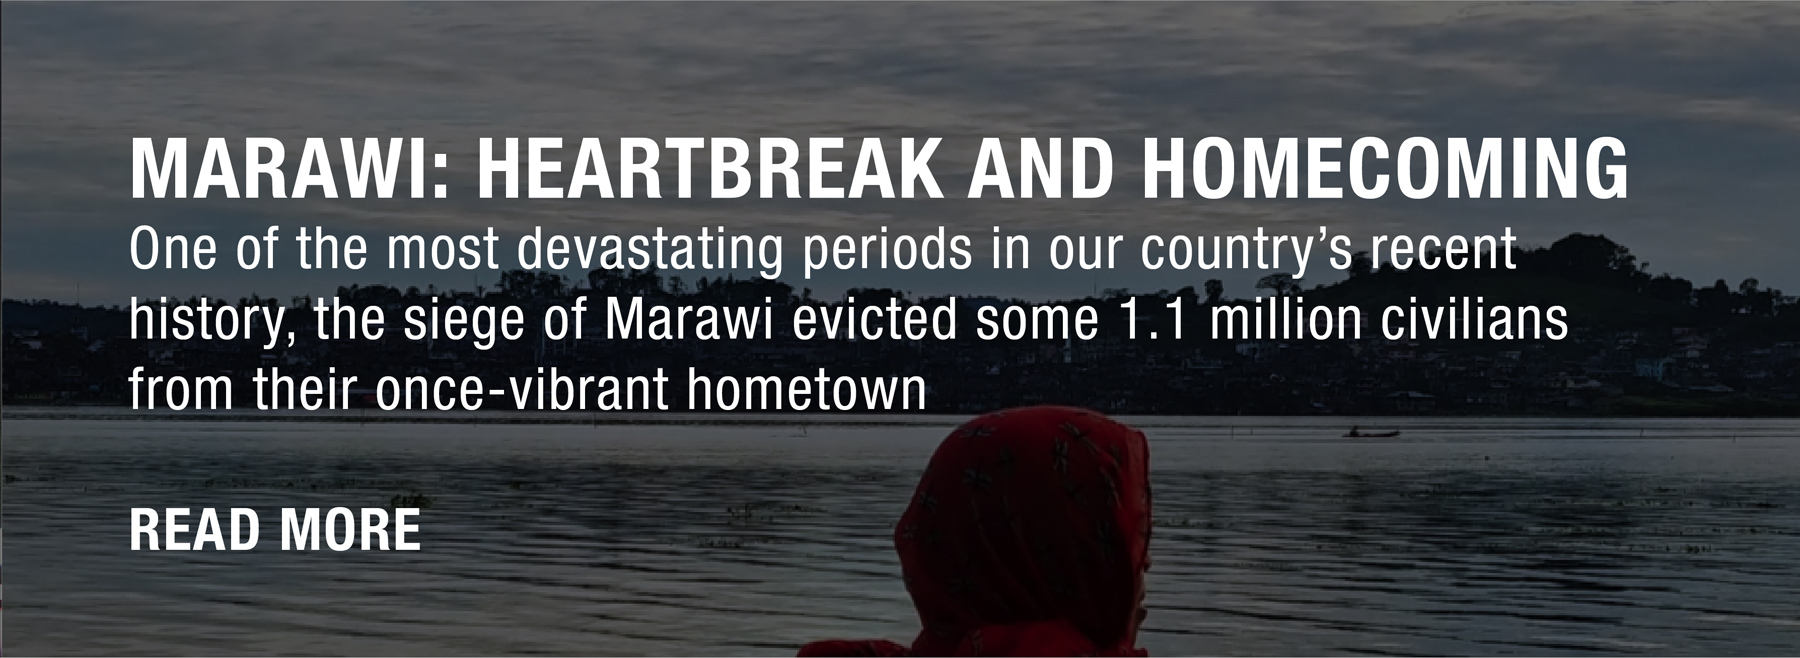 Marawi: Heartbreak and Homecoming / Click to read more